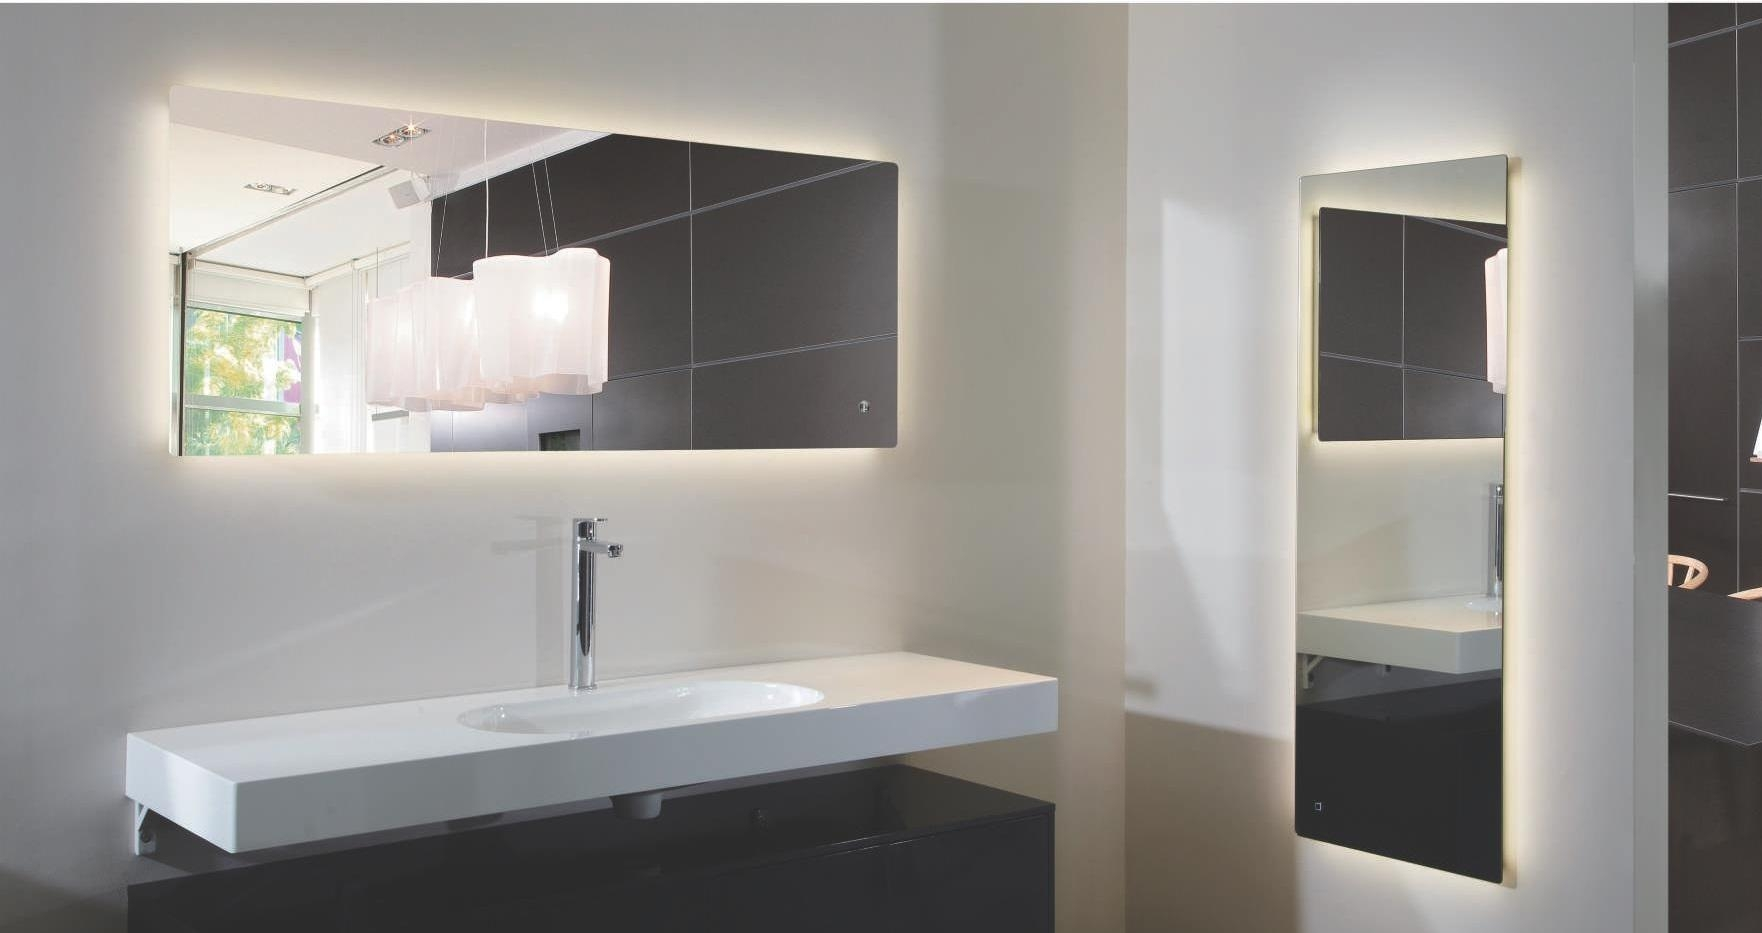 Ove Decors Villon Led Bathroom Mirror: Top 20 Led Illuminated Bathroom Mirrors